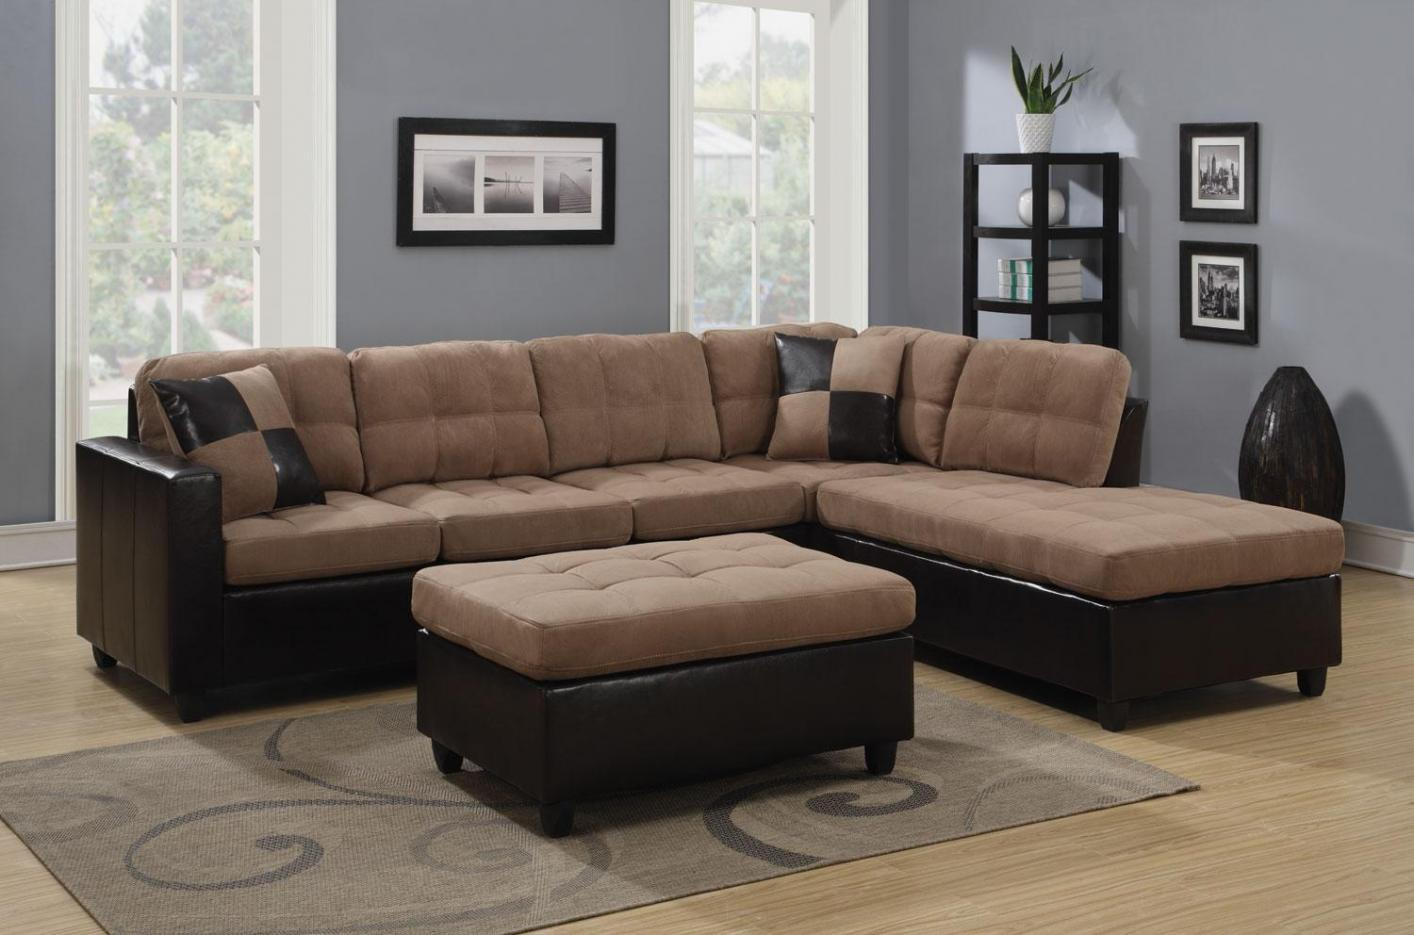 Mallory Beige Leather Sectional Sofa Mallory Beige Leather Sectional Sofa  ...